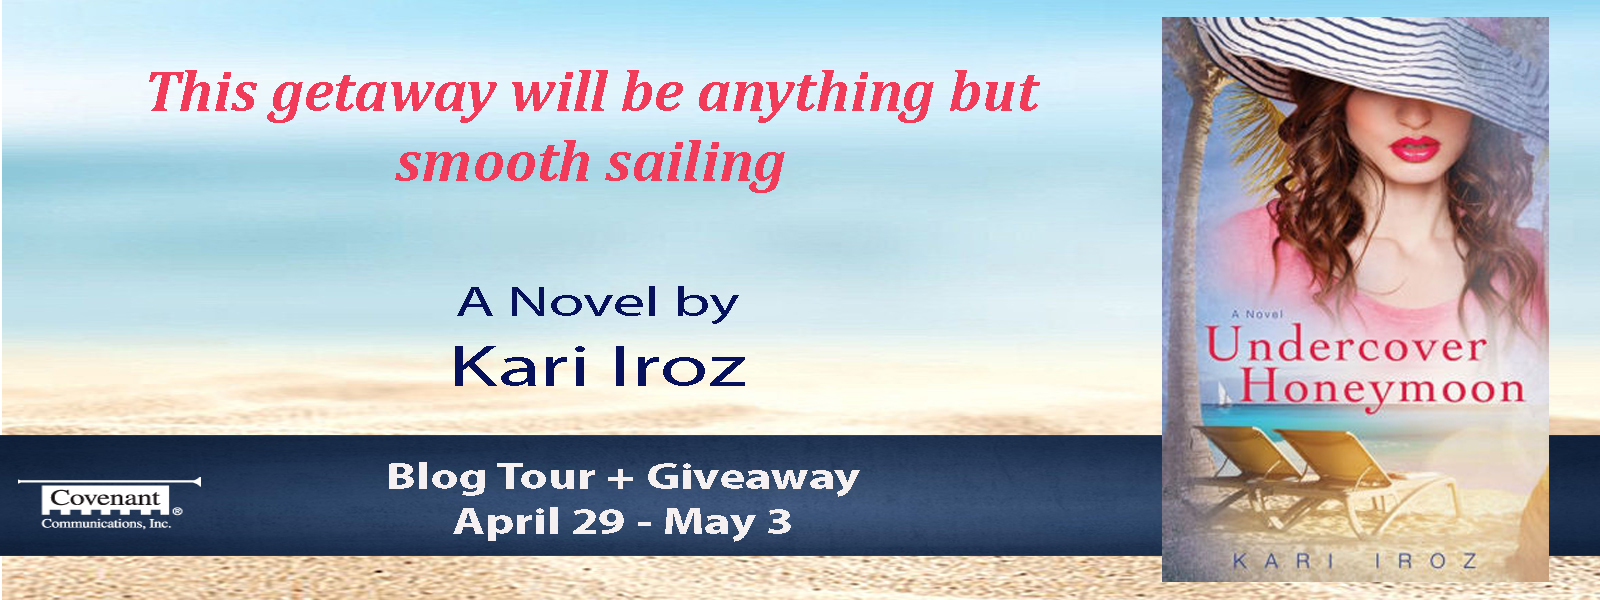 Giveaway for a copy of Undercover Honeymoon by Kari Iroz